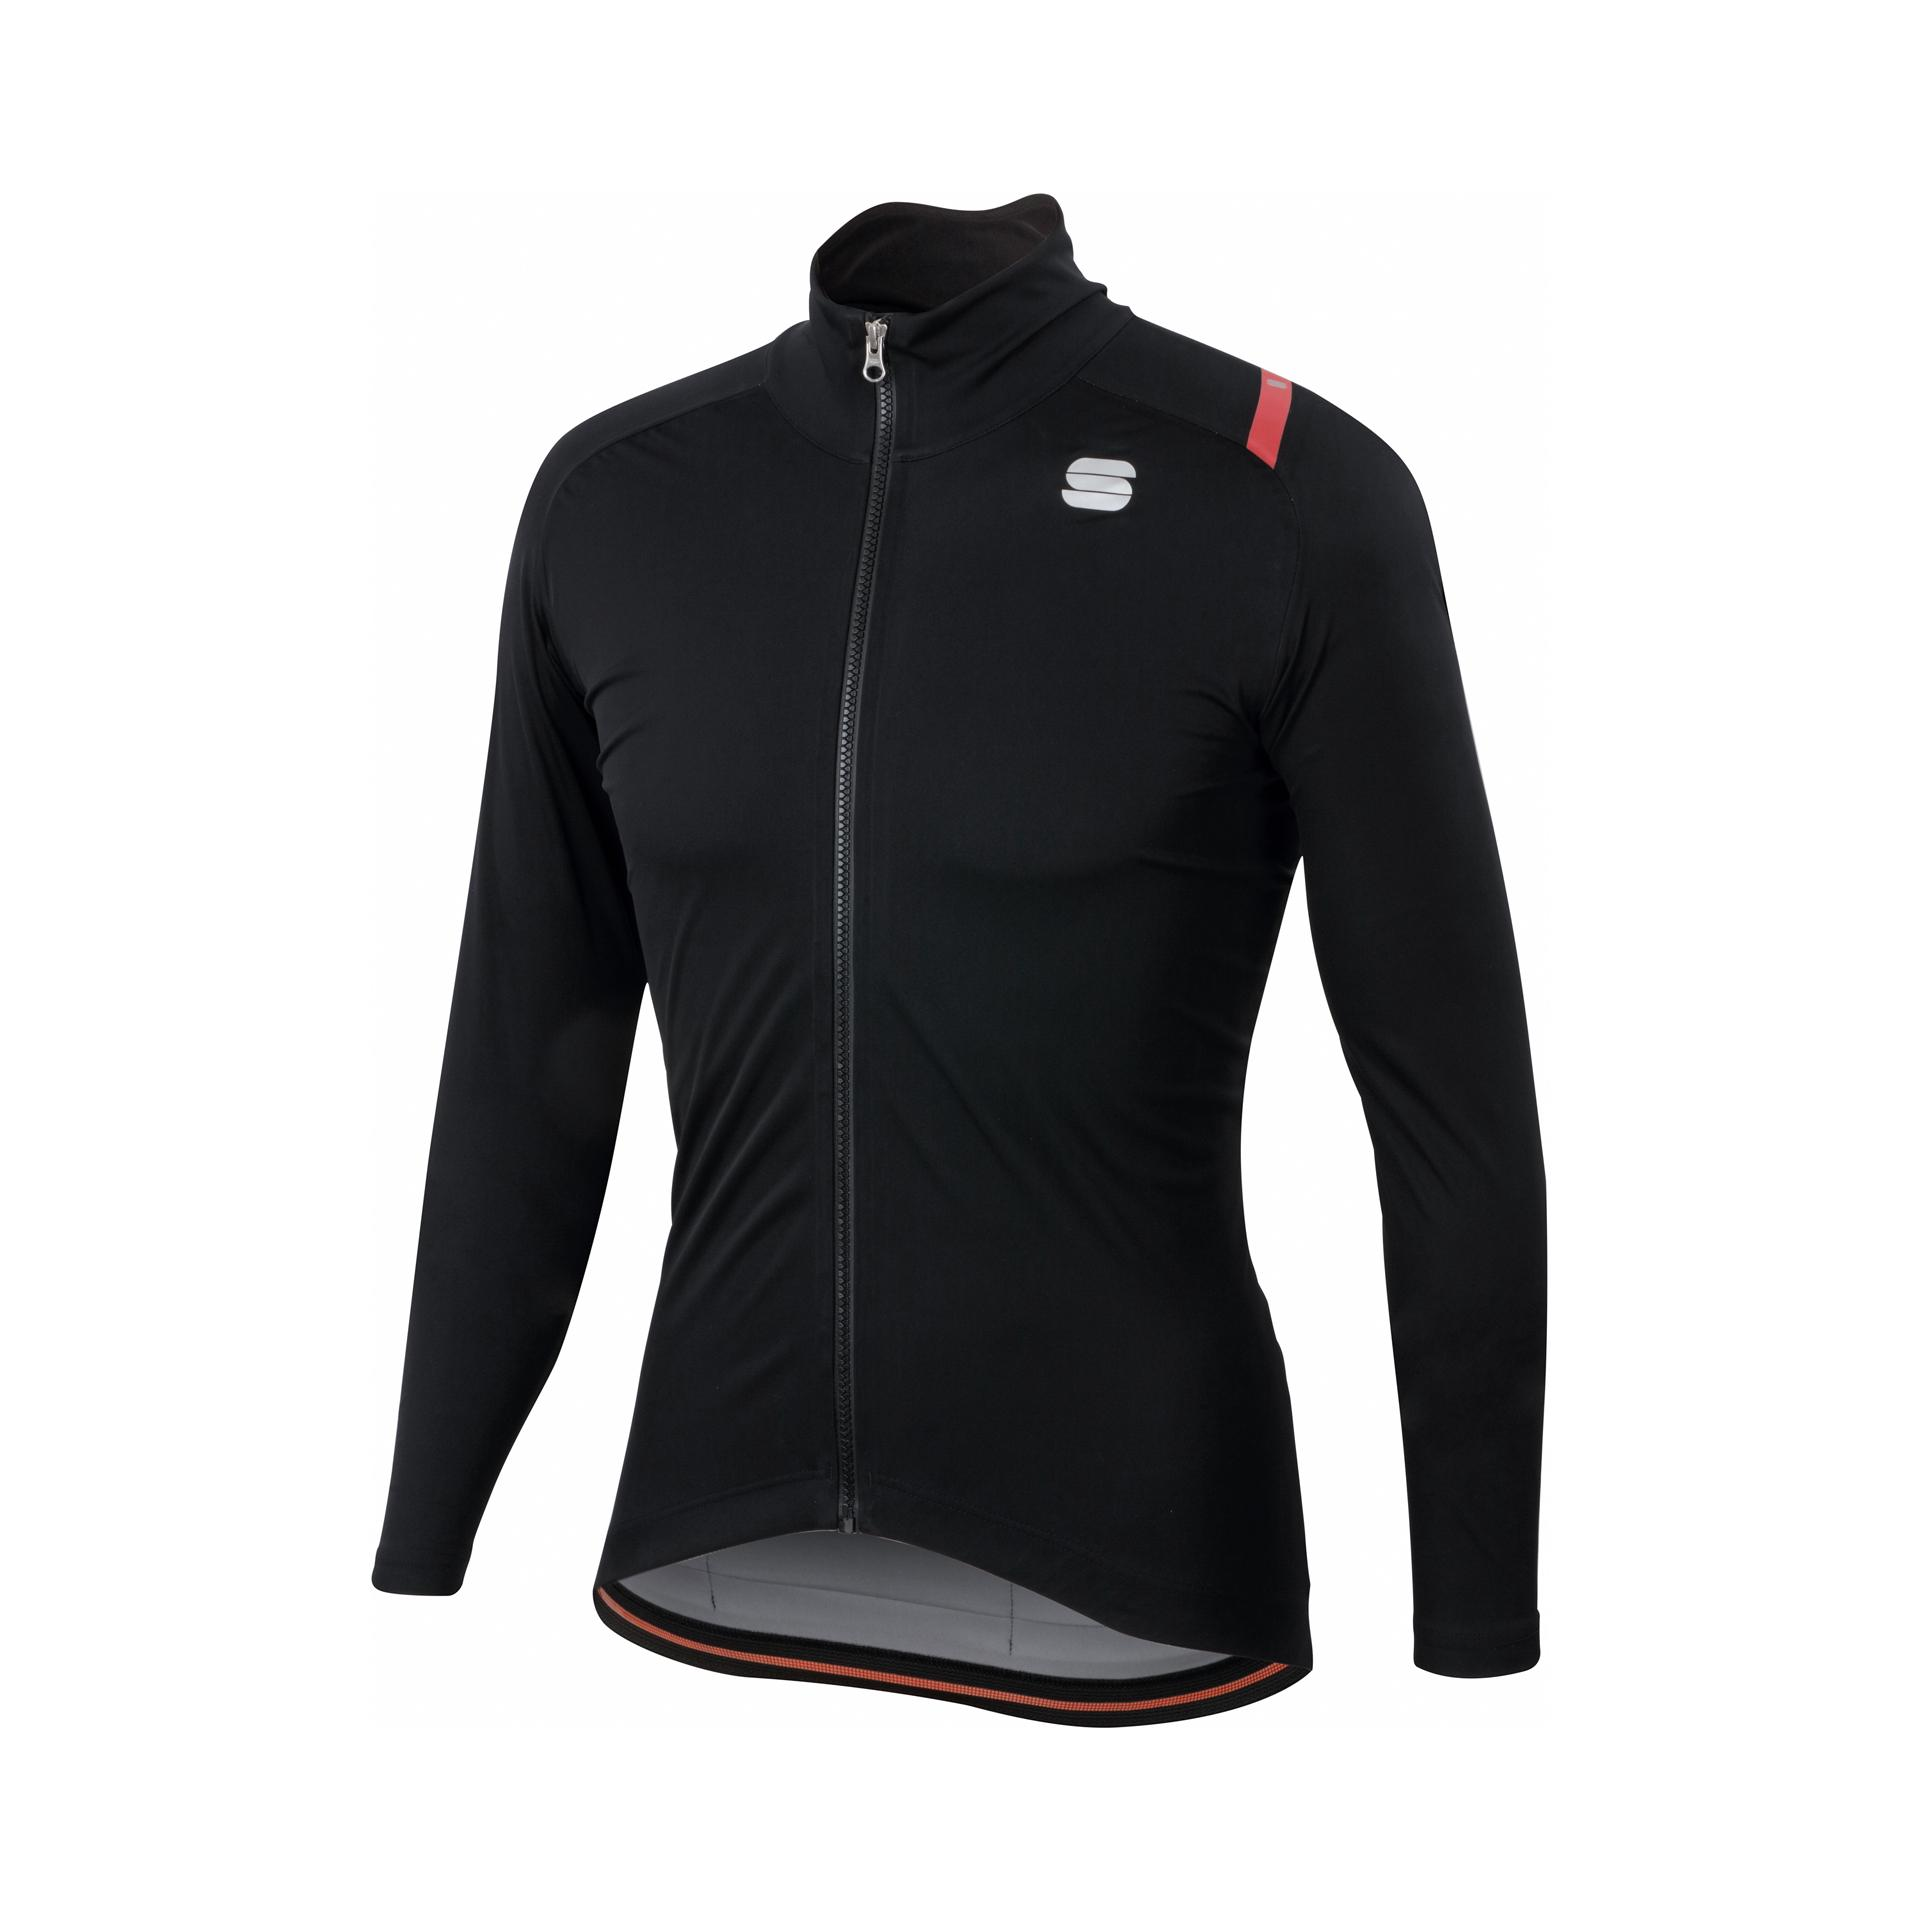 Sportful Fietsjack Heren Zwart / SF Fiandre Ultimate 2 Ws Jacket-Black